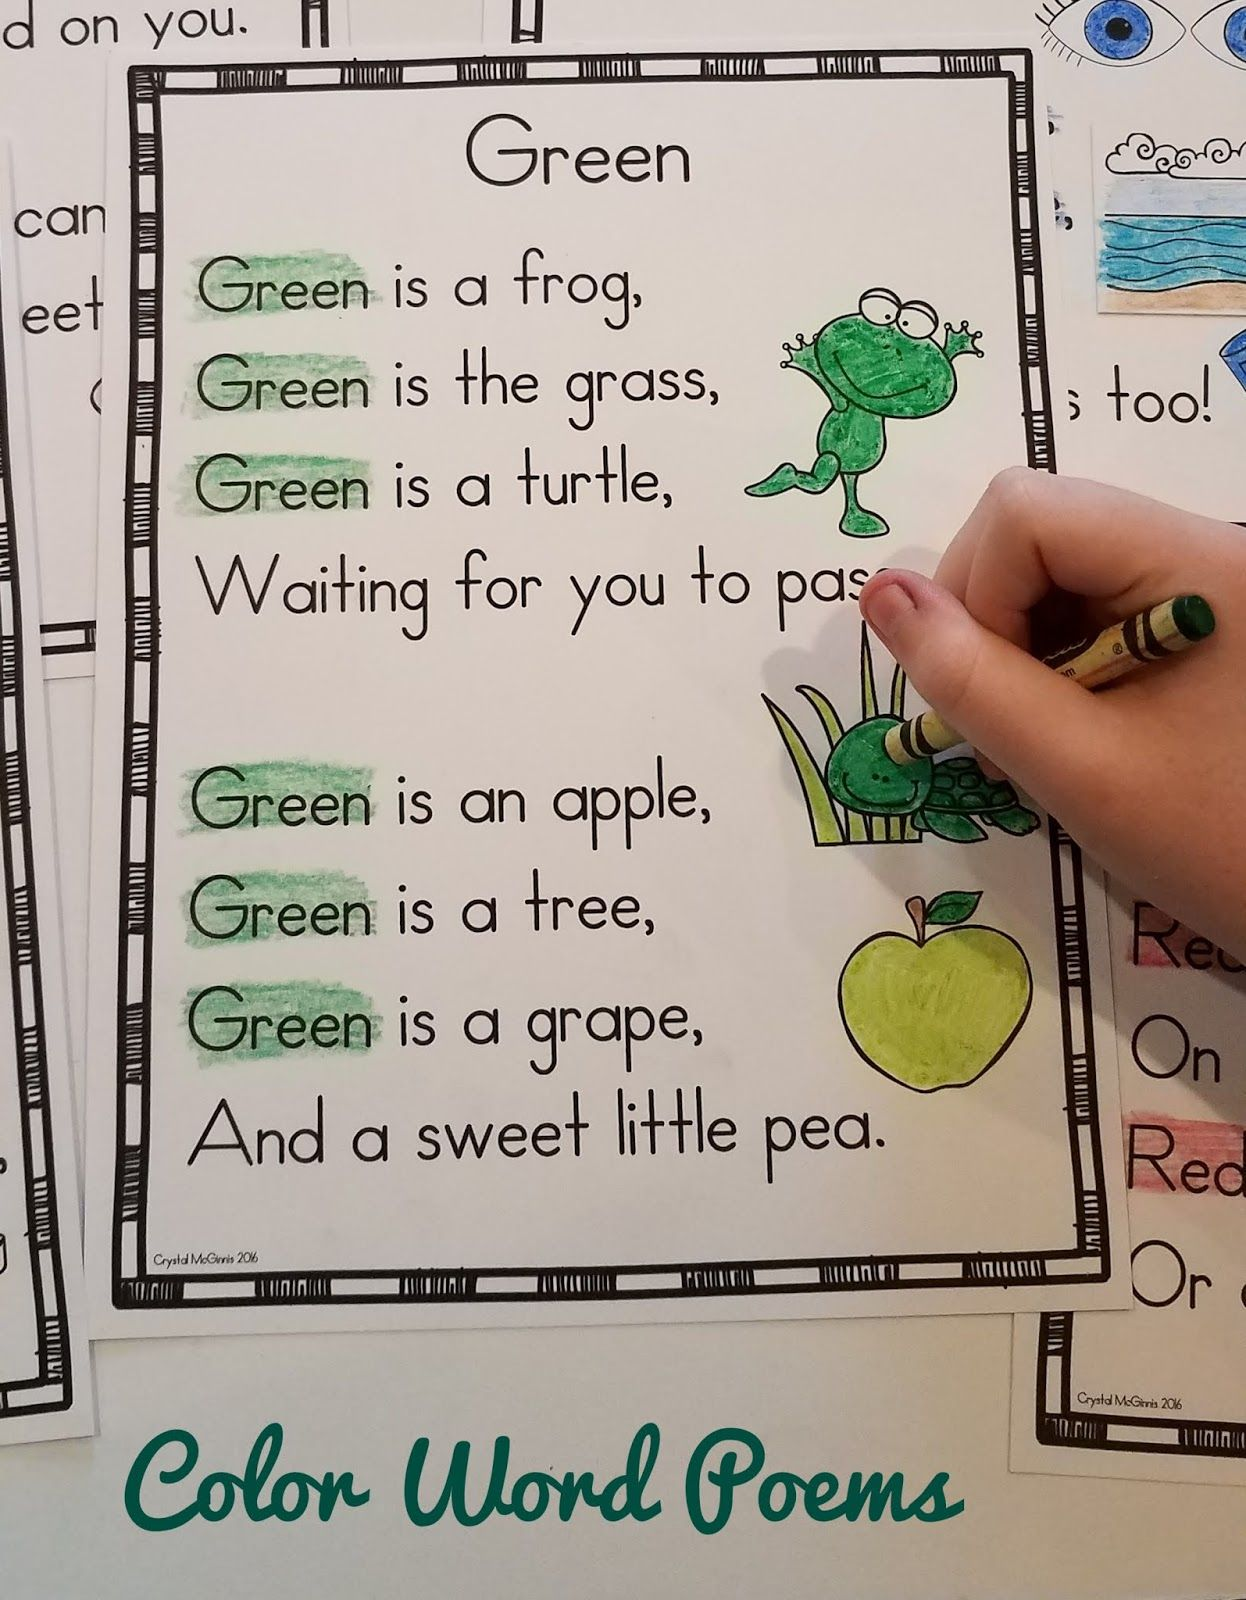 11 Color Words Poems For Shared Reading Shape Poems For Kids Poetry For Kids Shared Reading Poems [ 1600 x 1246 Pixel ]